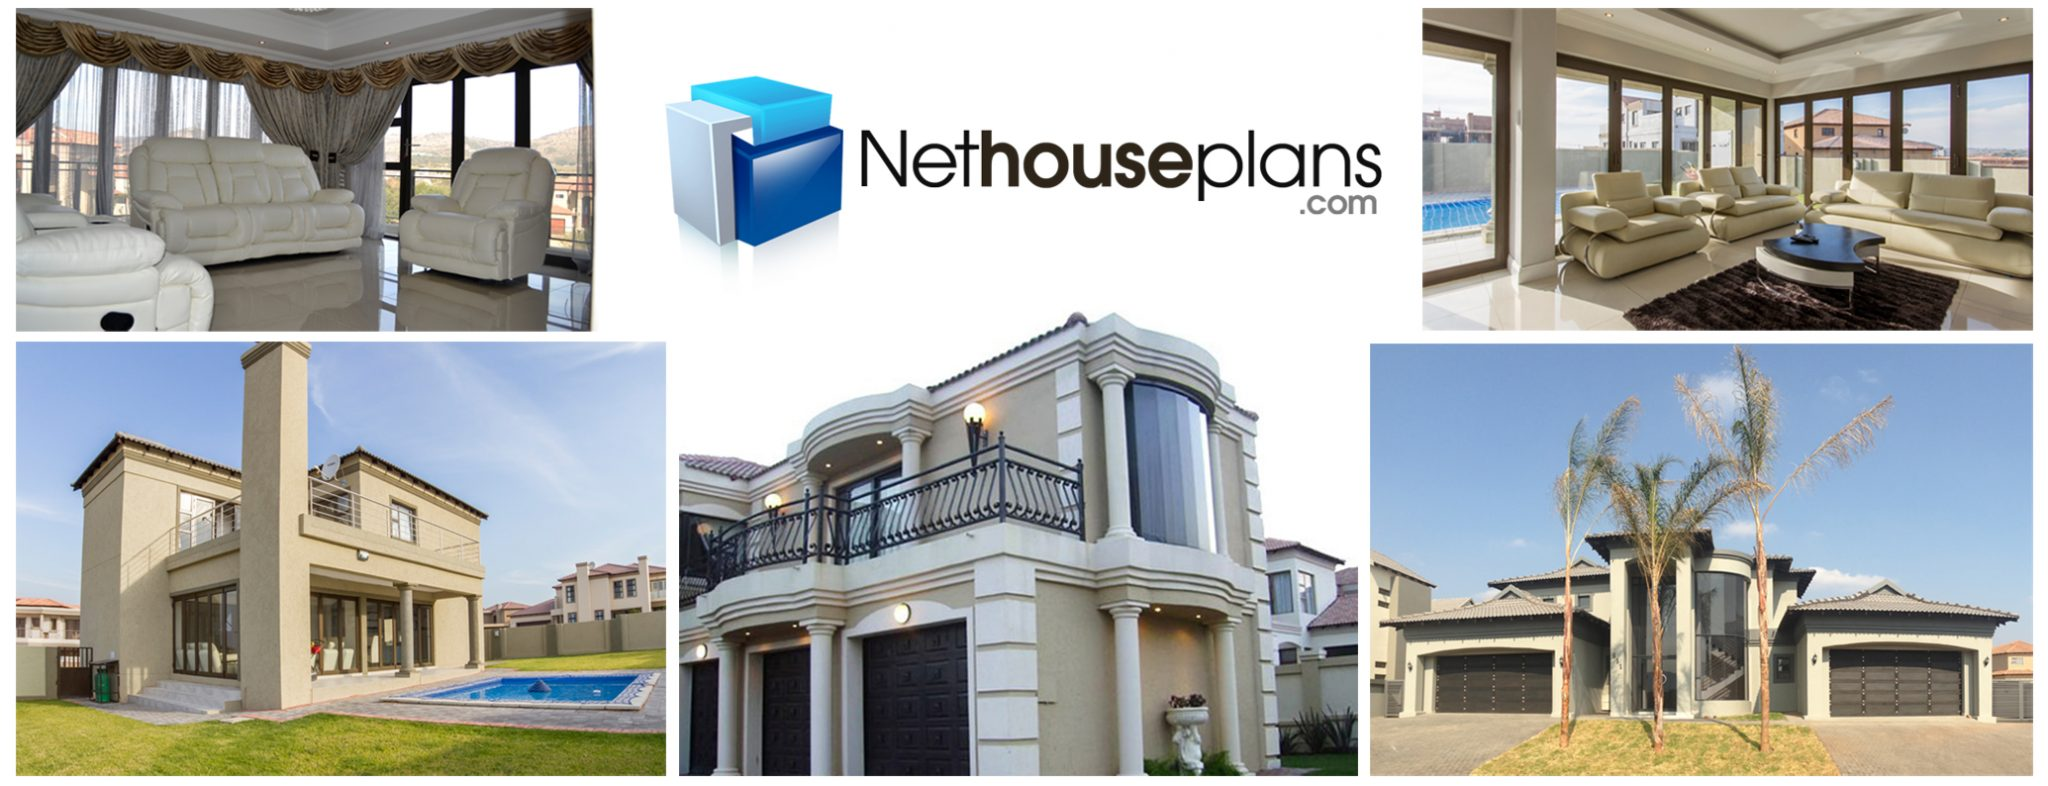 Tuscan architecture design style, nethouseplans signature designs